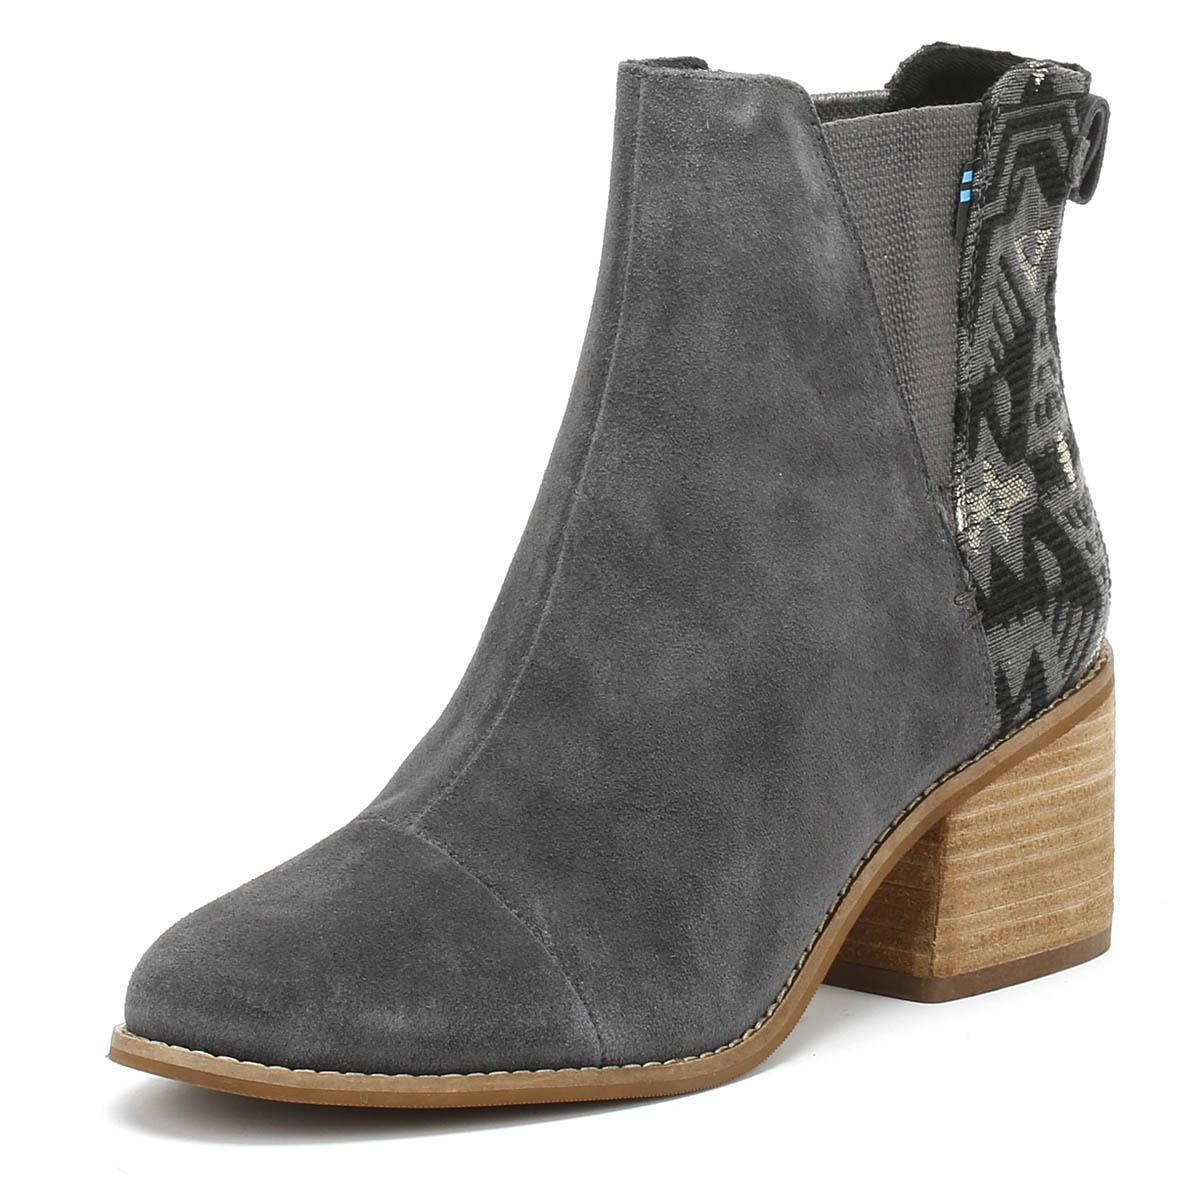 439d3274e93 Lyst - TOMS Esme Womens Grey Jacquard Suede Boots in Gray